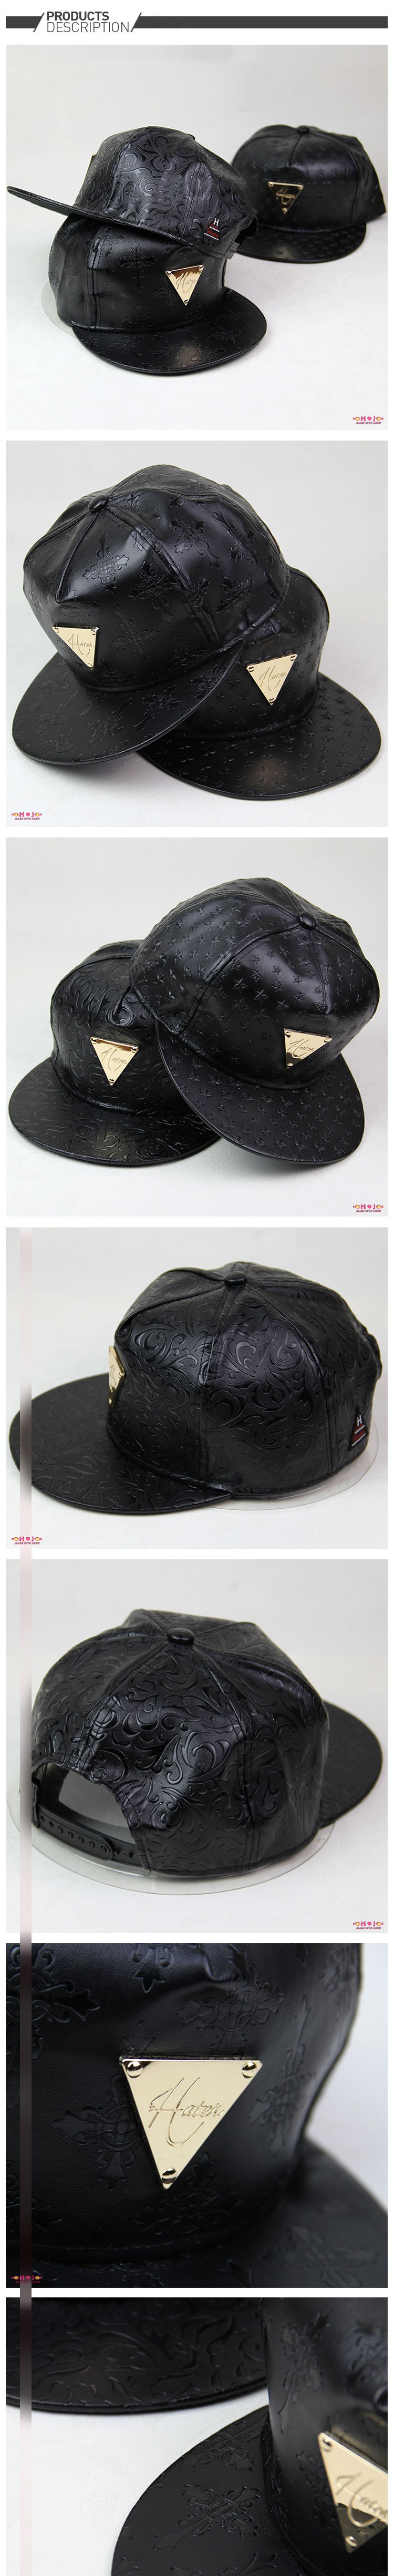 be4fbd94a350b 6 Styles brand hater adjustable caps and hats for men women snap back sport  fitted baseball bonesUSD 8.21-9.24 piece